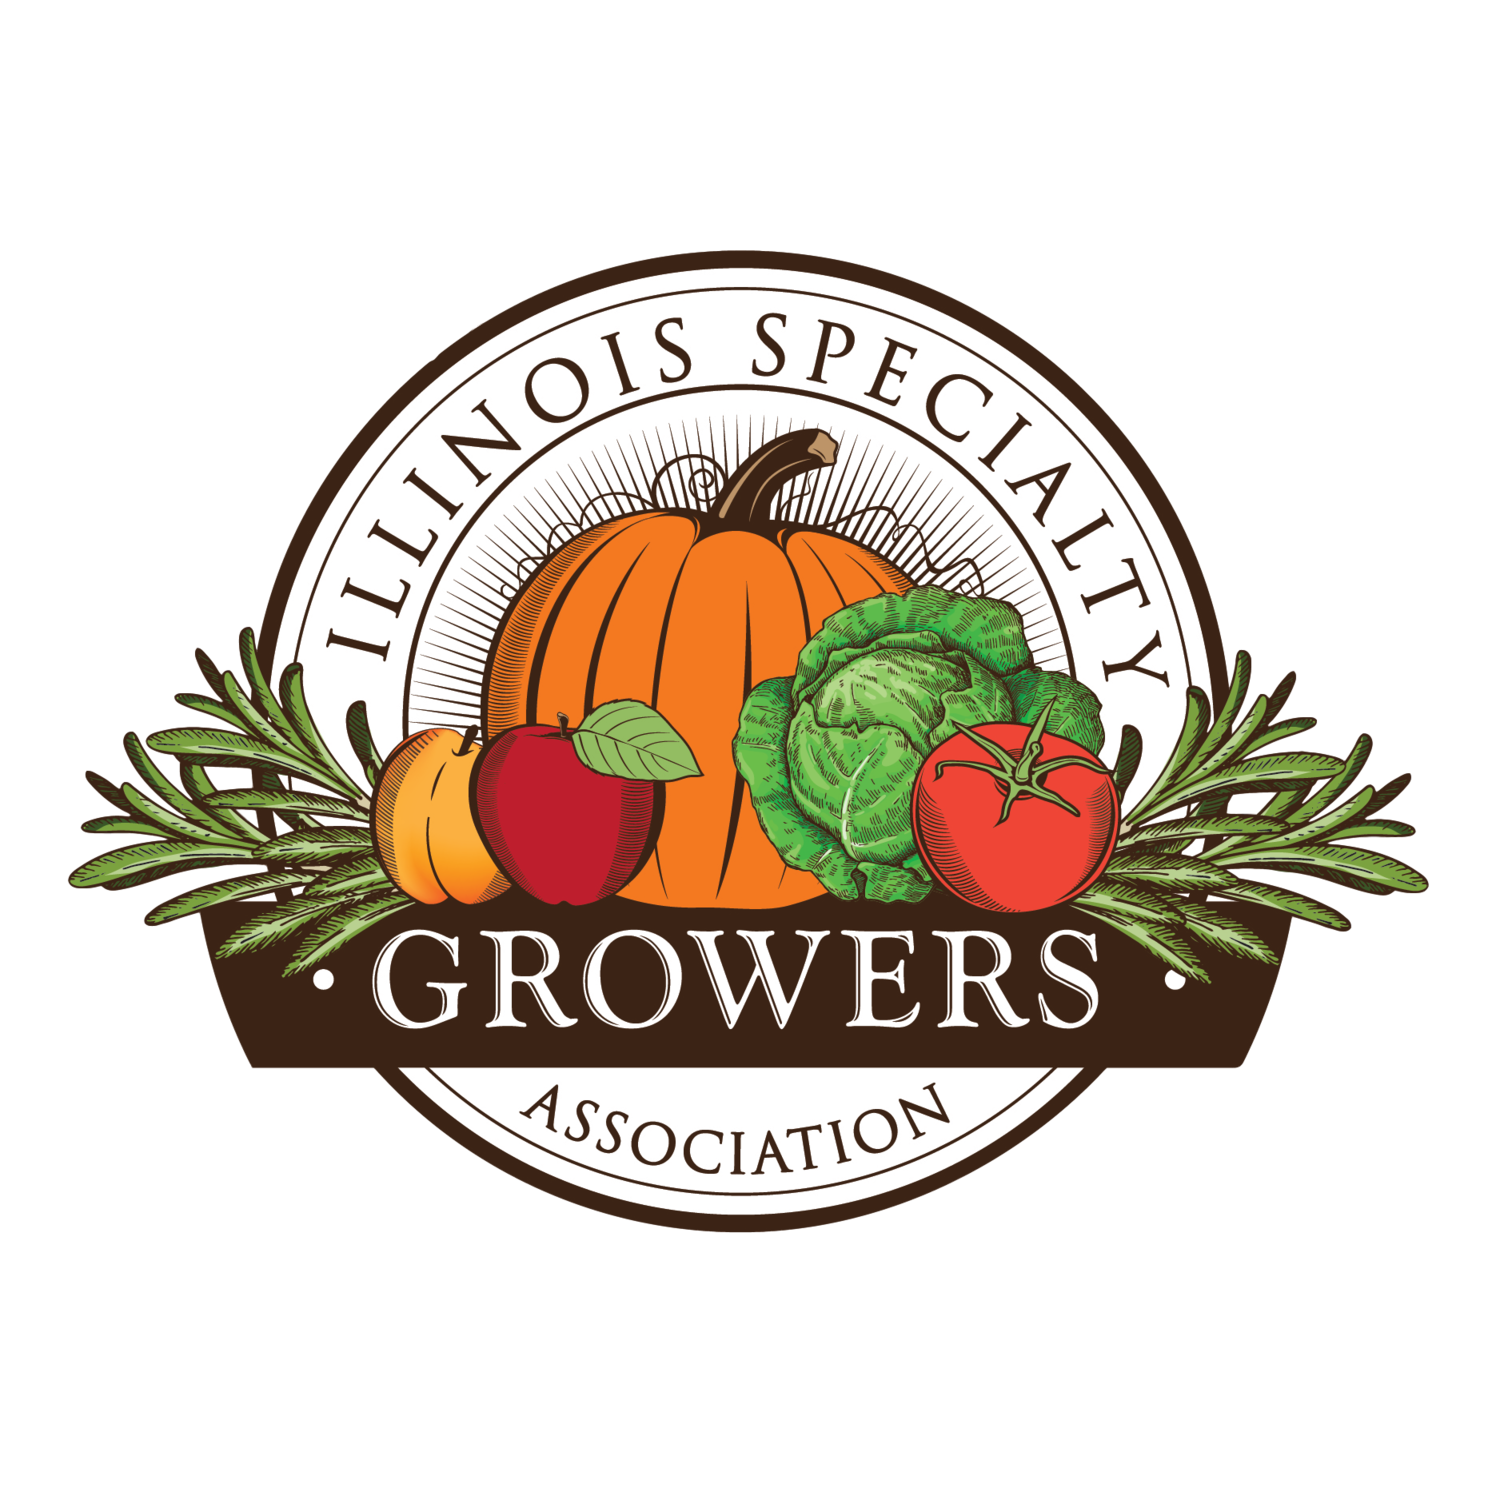 Specialty growers encouraged to share stories of their farms